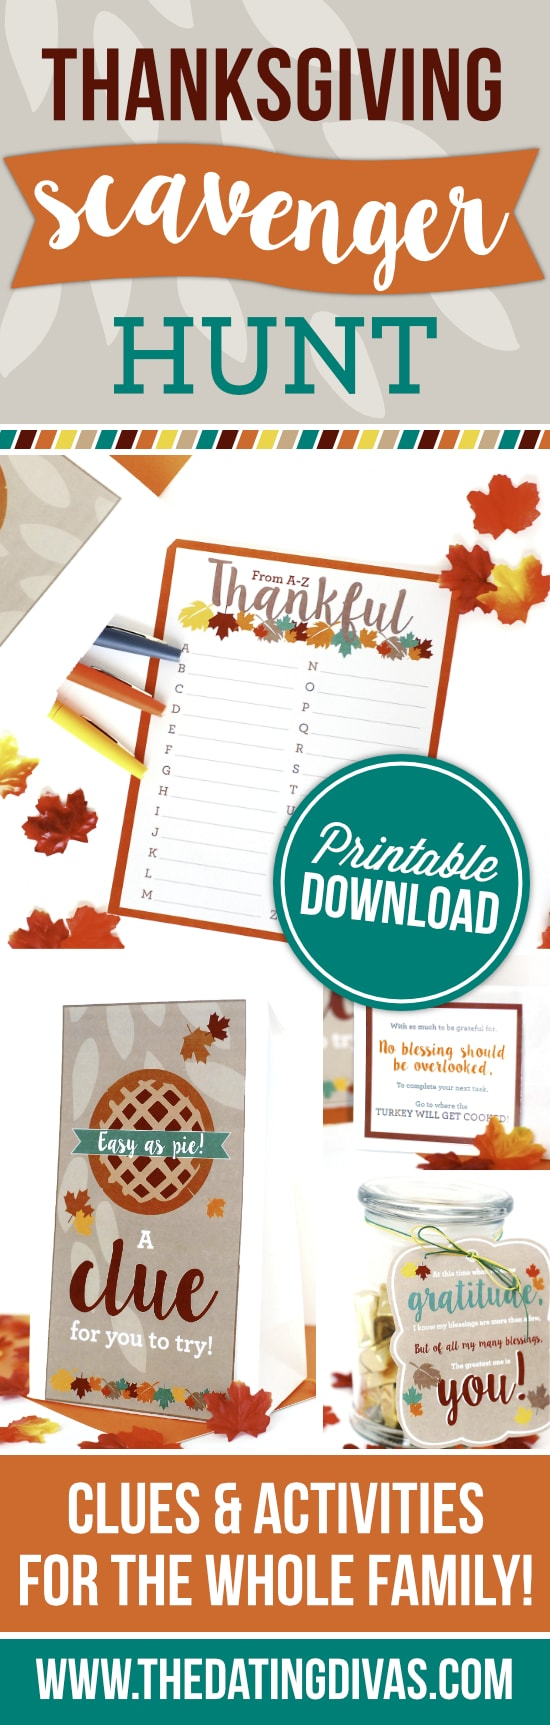 Thanksgiving Scavenger Hunt - Free thanksgiving games from 30 days of Thanksgiving activities for kids